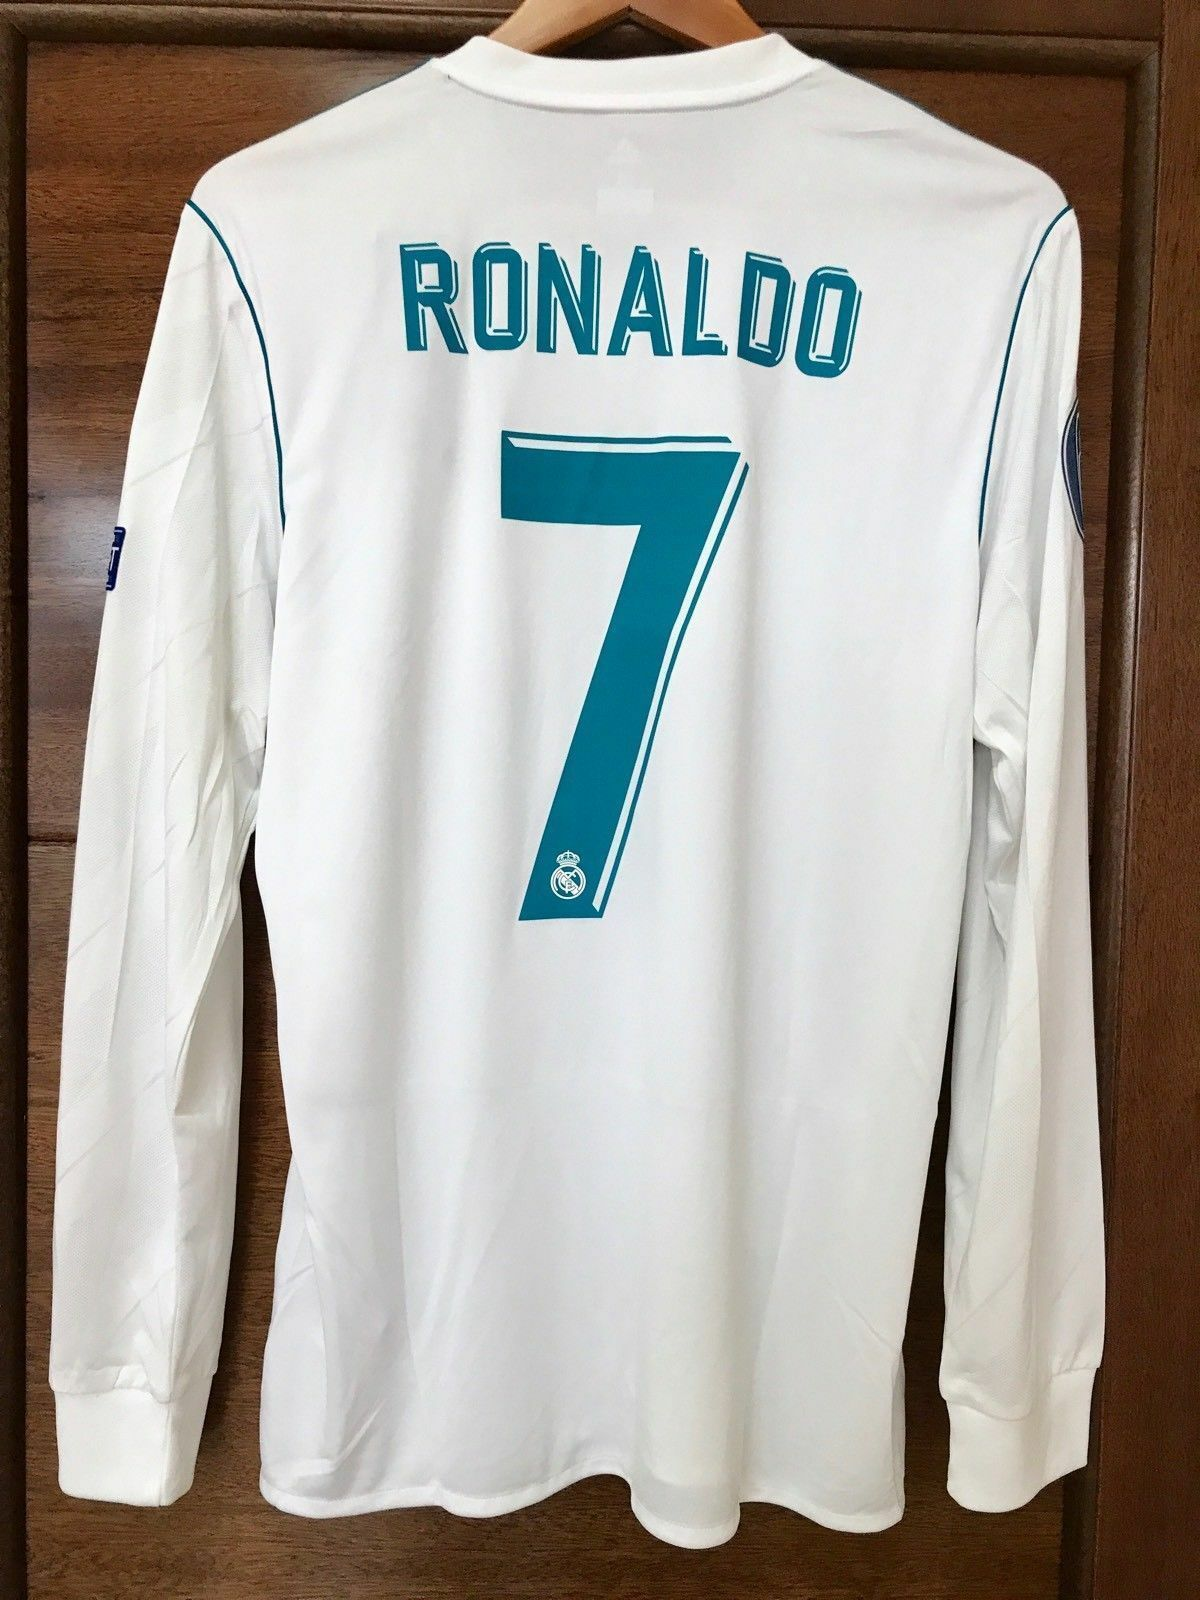 Maglia REAL MADRID Adidas RONALDO 7 Final Champions League 2018 KYIV -S-M-L-XL